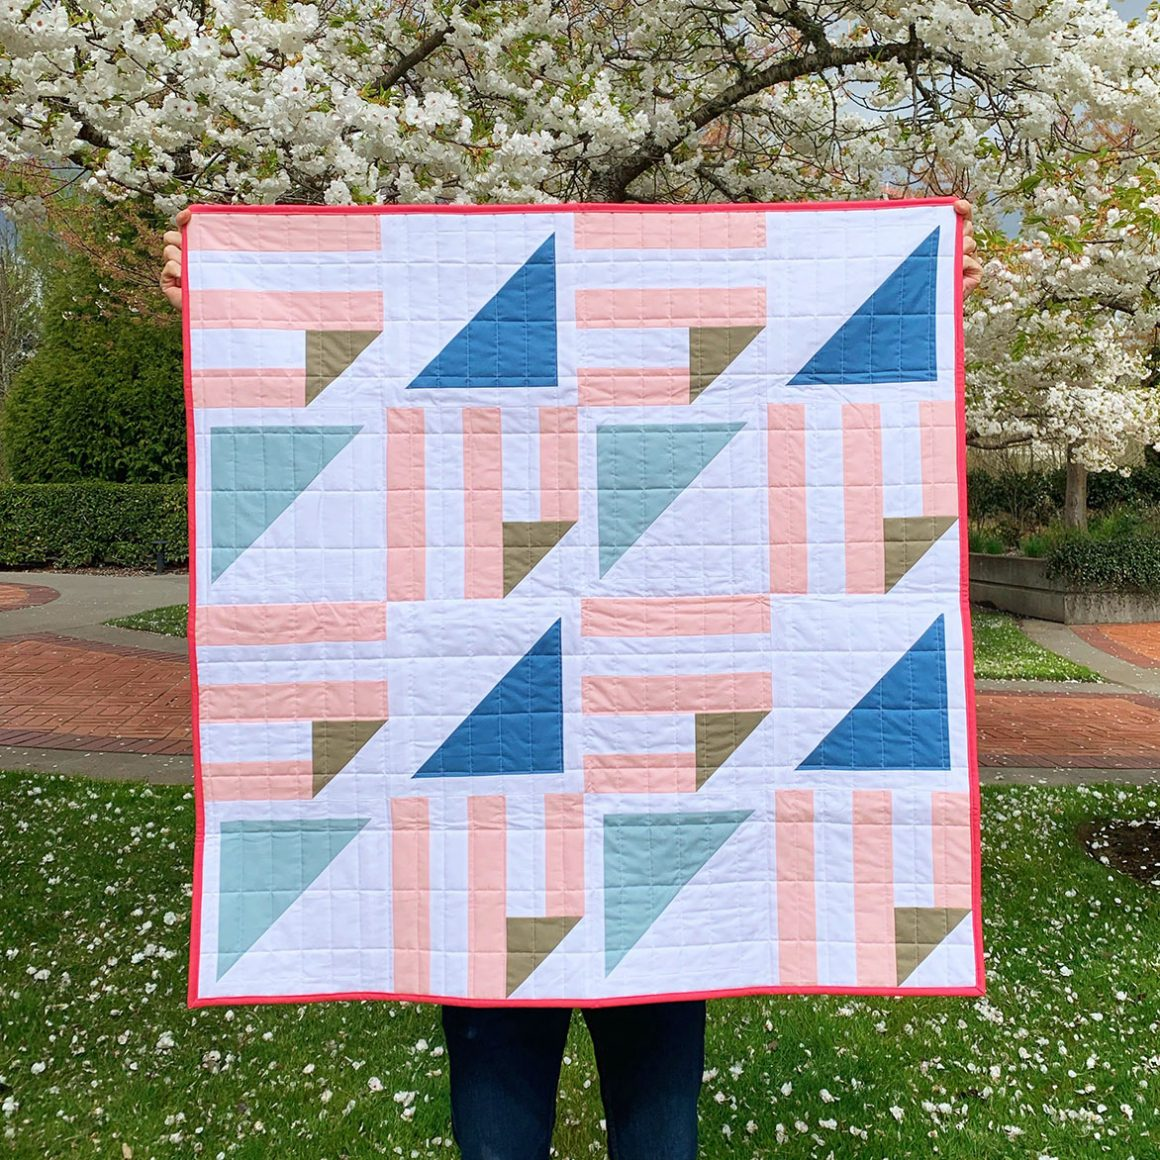 Half Pint Quilt - made by ClaireAndHerCrafts